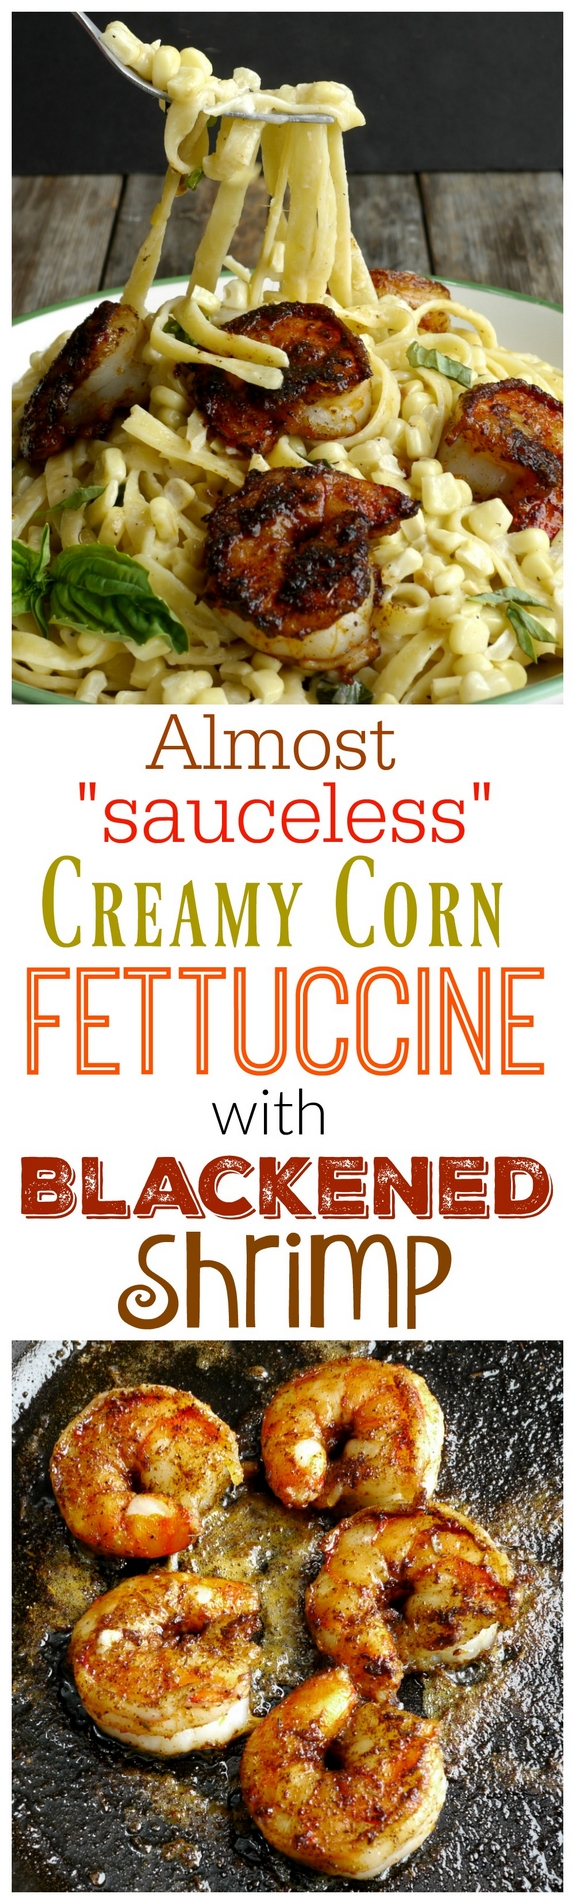 "VIDEO + Recipe and just in time for summer, this light and delicious Almost ""sauceless"" Creamy Corn Fettuccine with Blackened Shrimp tastes way more decadent than it actually is, from NoblePig.com."